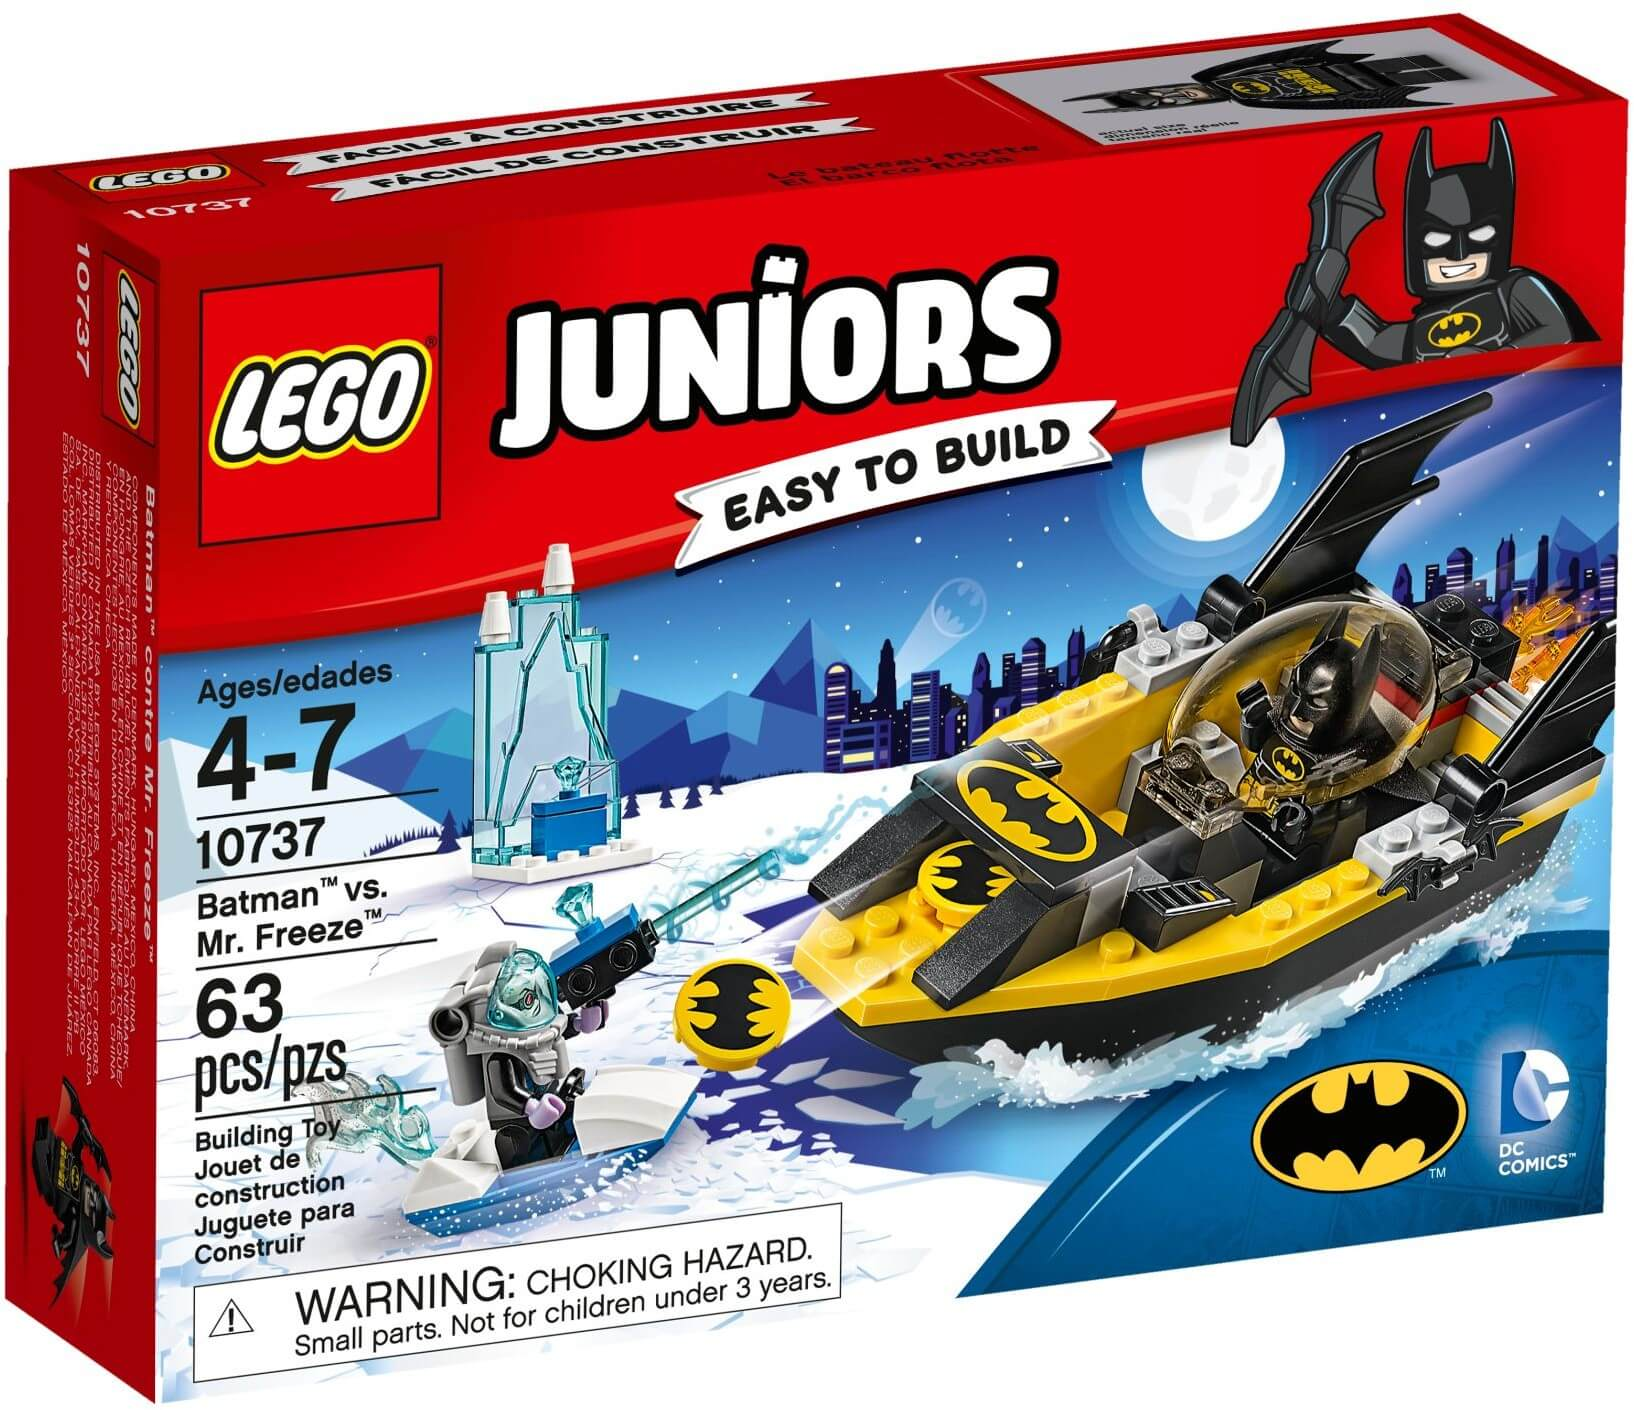 Mua đồ chơi LEGO 10737 - LEGO Juniors 10737 - Batman đại chiến Mr. Freeze (LEGO 10737 Batman vs. Mr. Freeze)